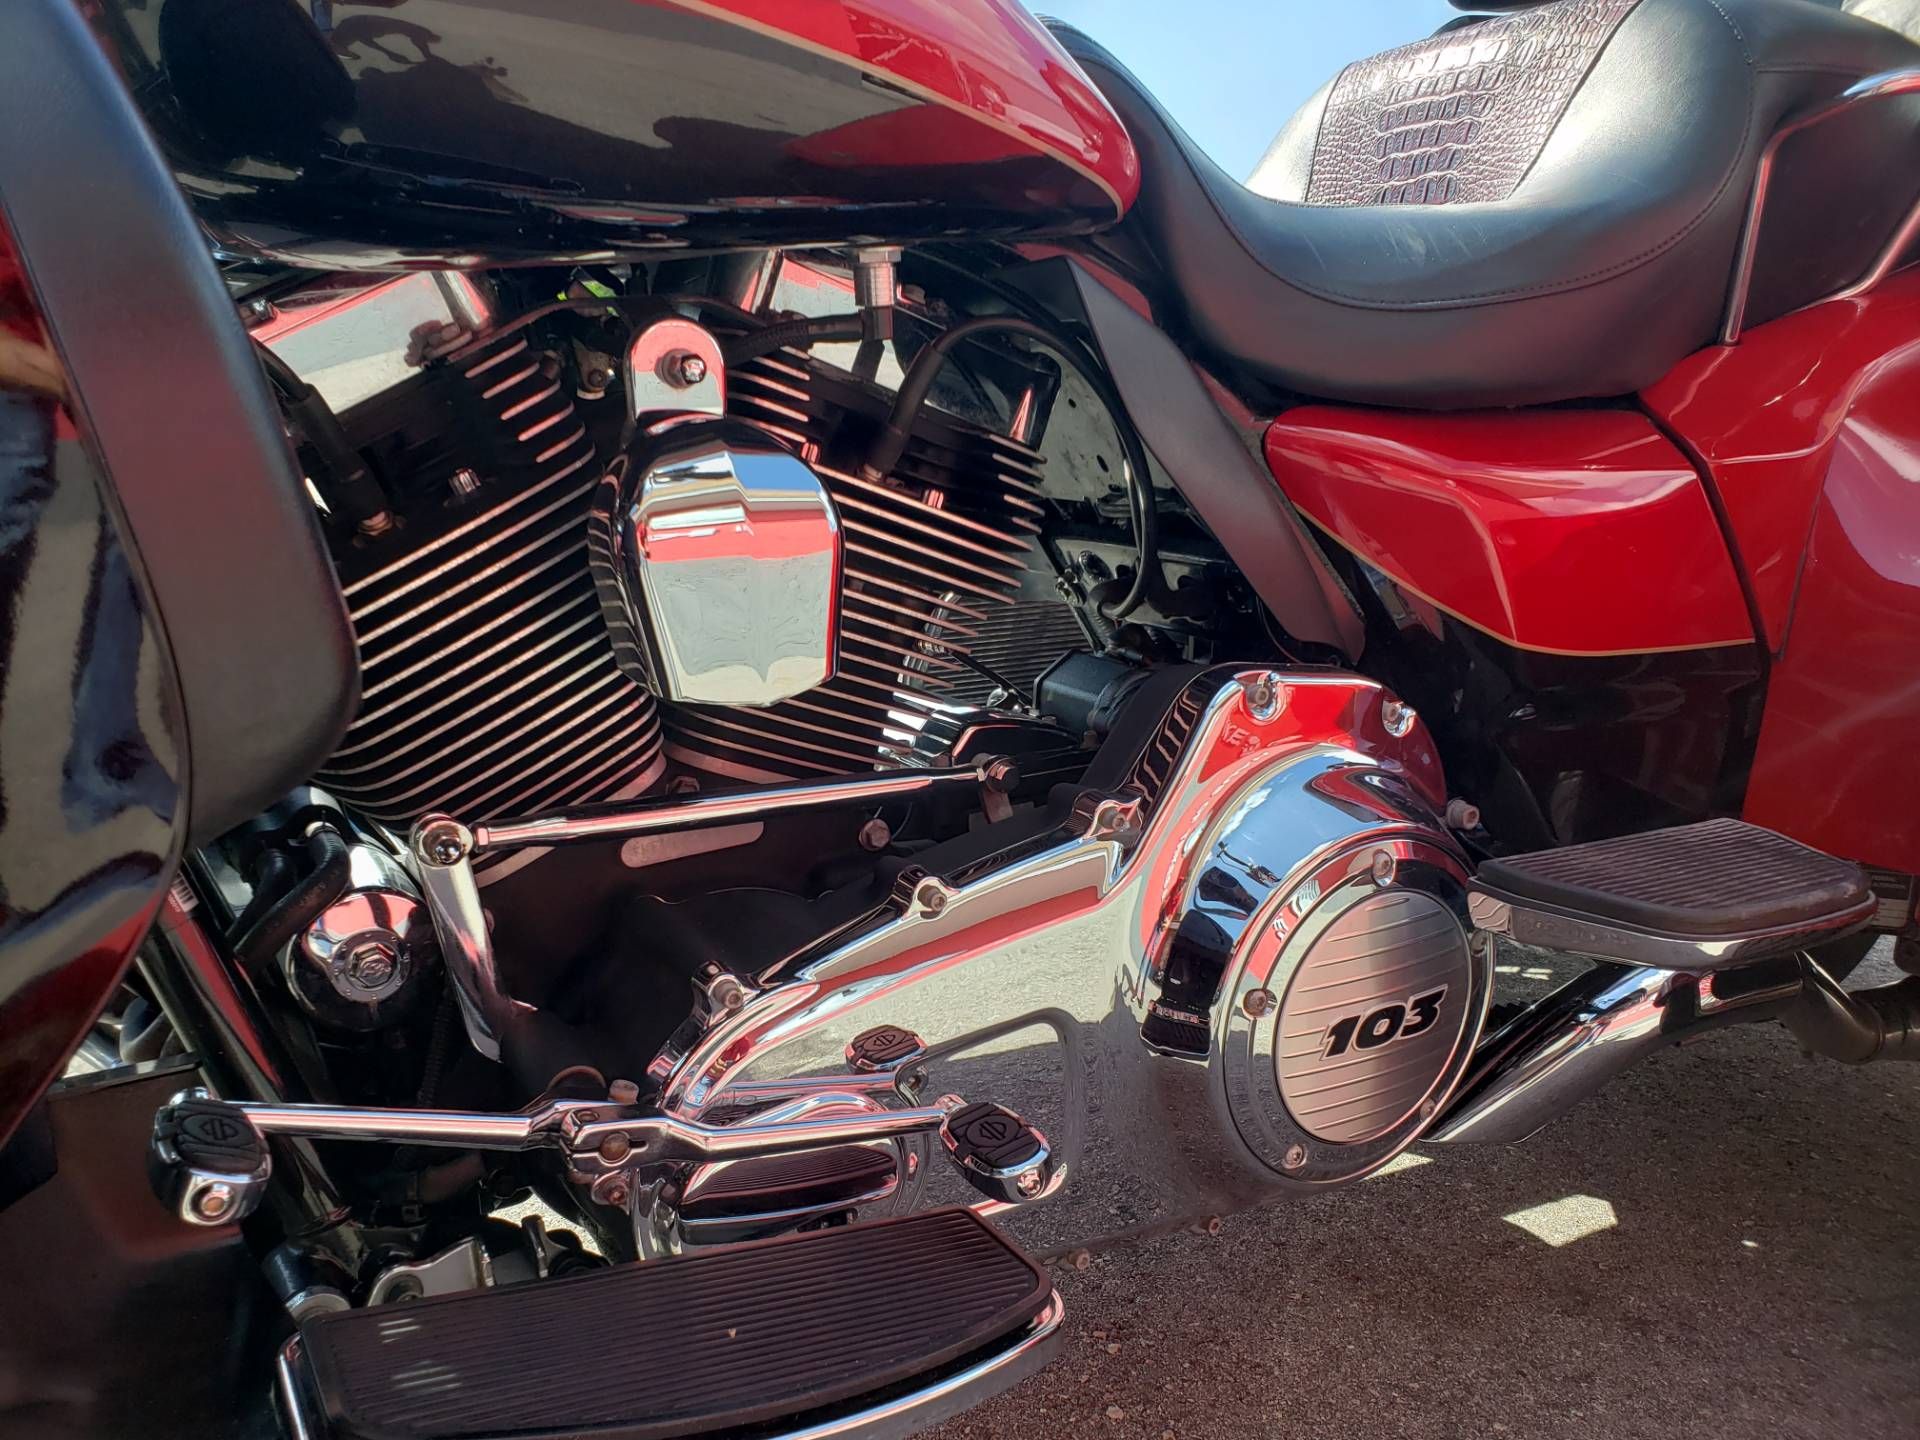 2011 Harley-Davidson ULTRA CLASSIC LIMITED in Fort Myers, Florida - Photo 10